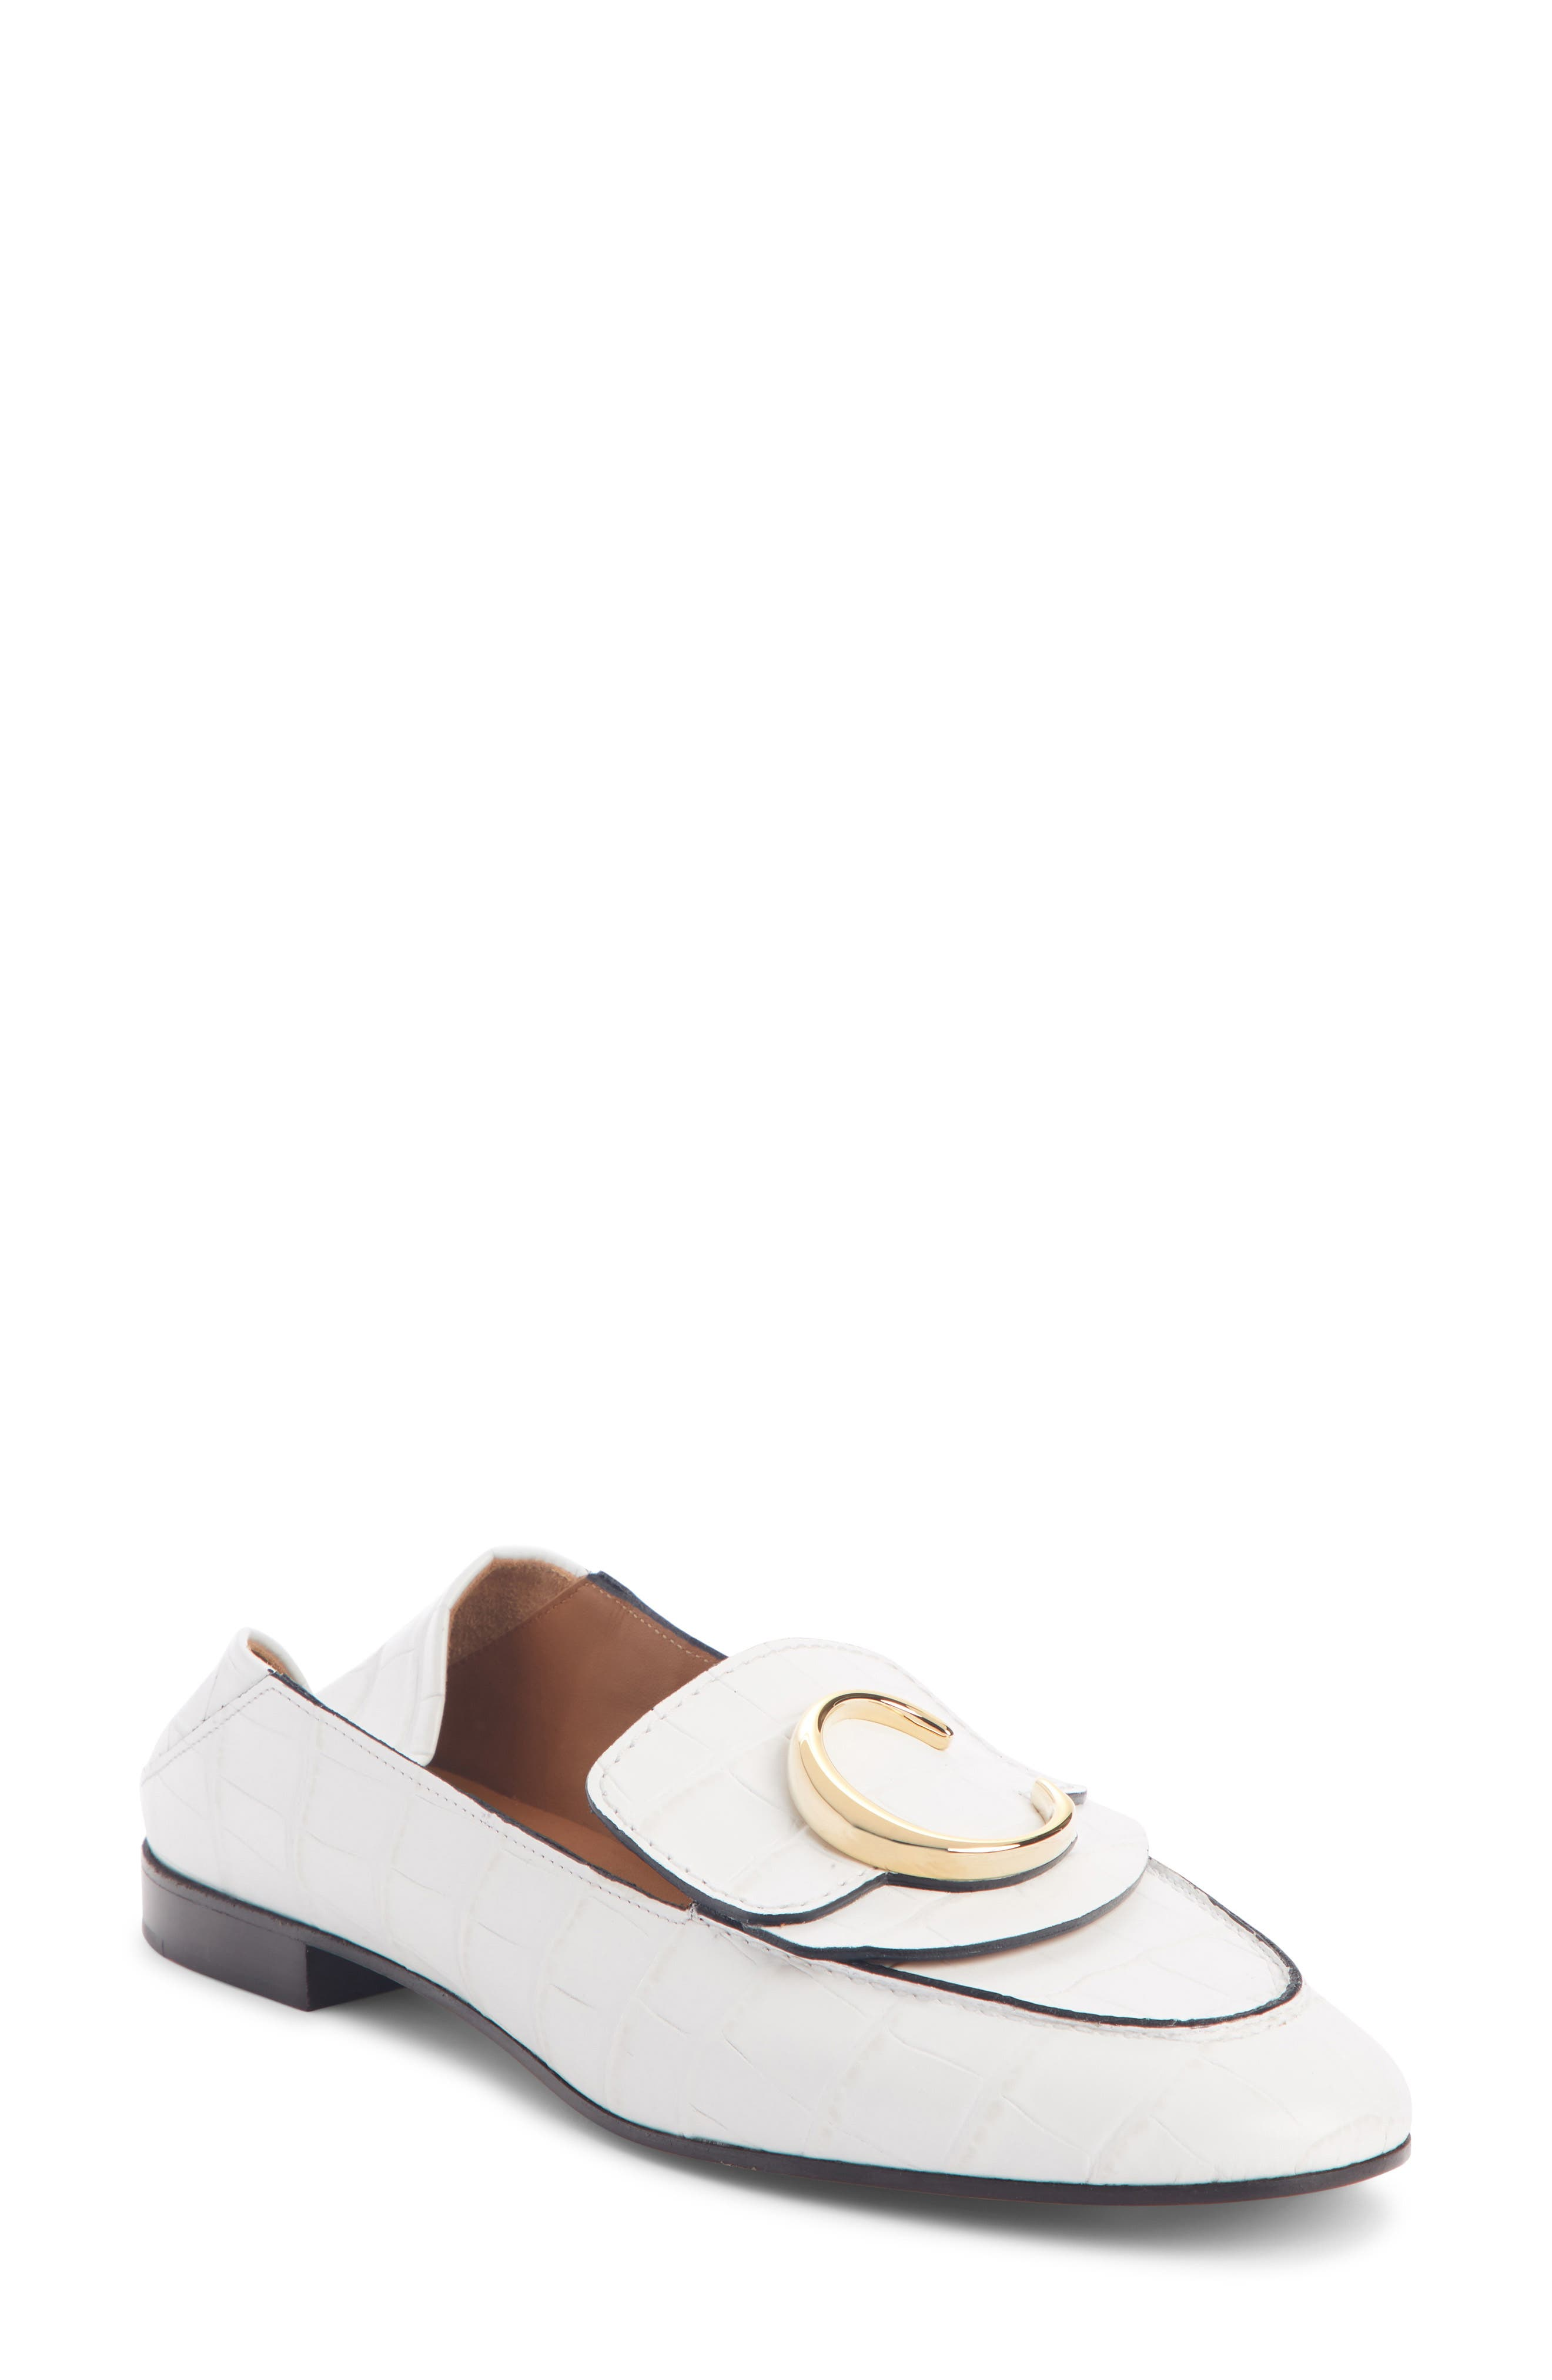 Chloe C Croc-Embossed Convertible Loafer - White